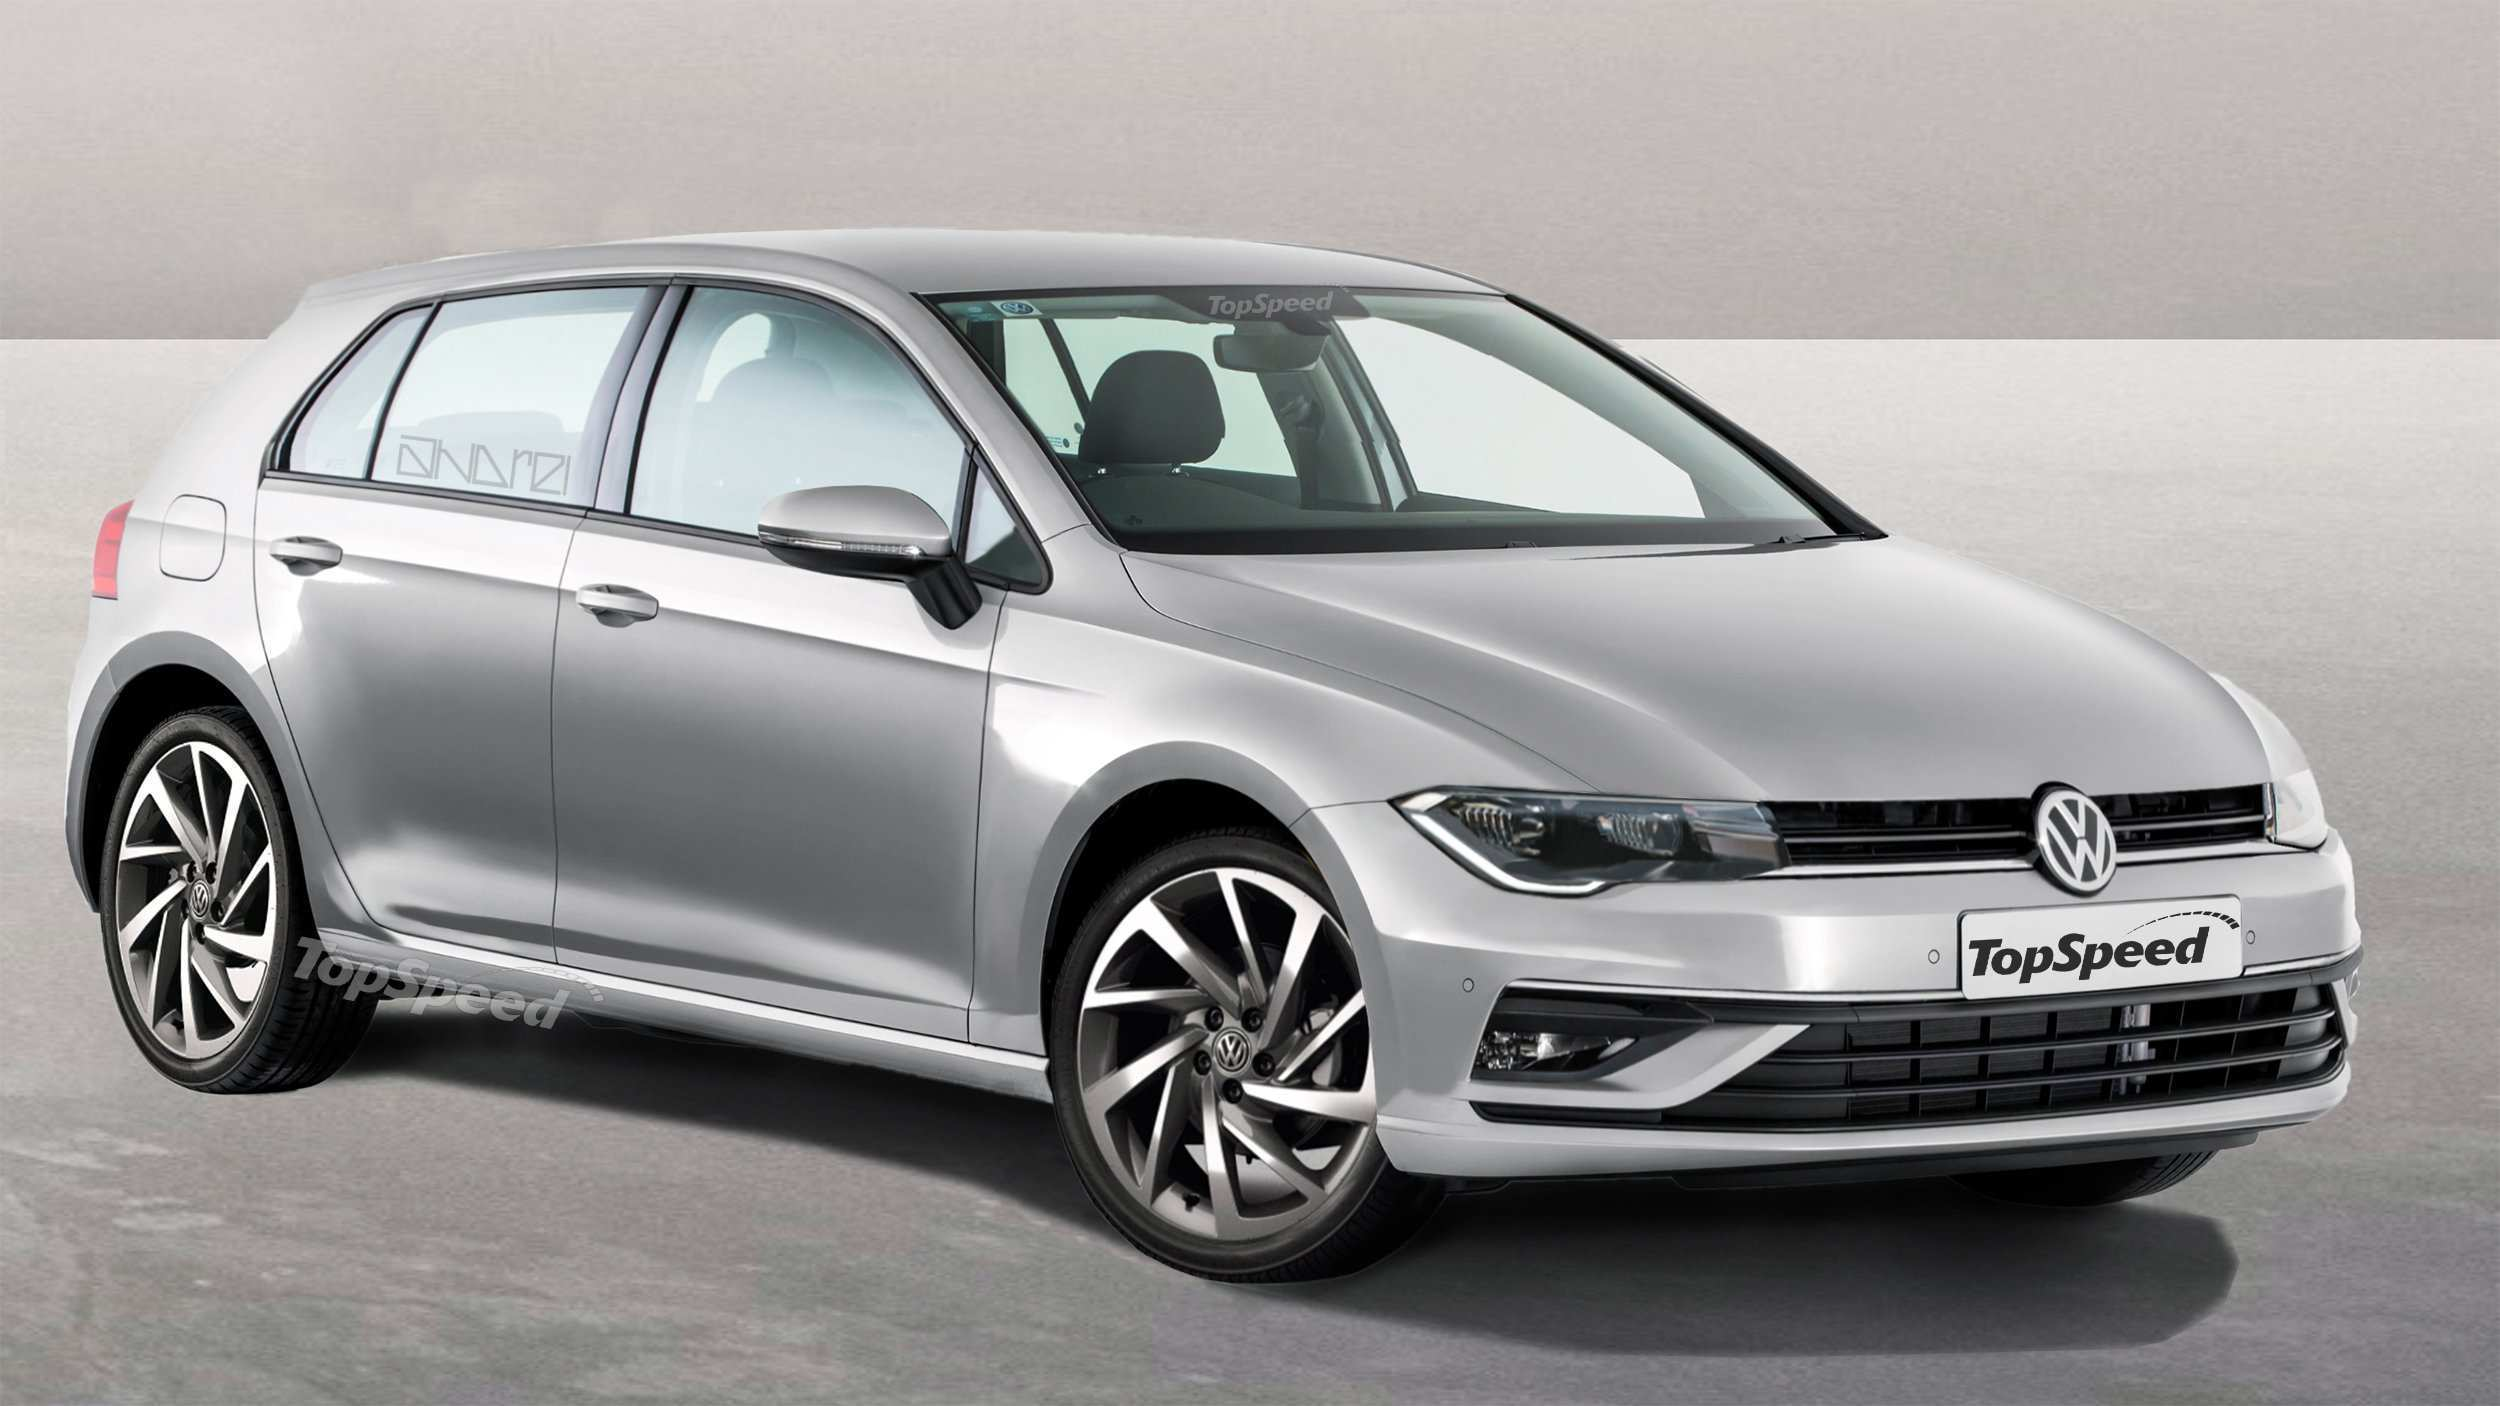 65 All New 2020 Volkswagen Golf GTD Overview